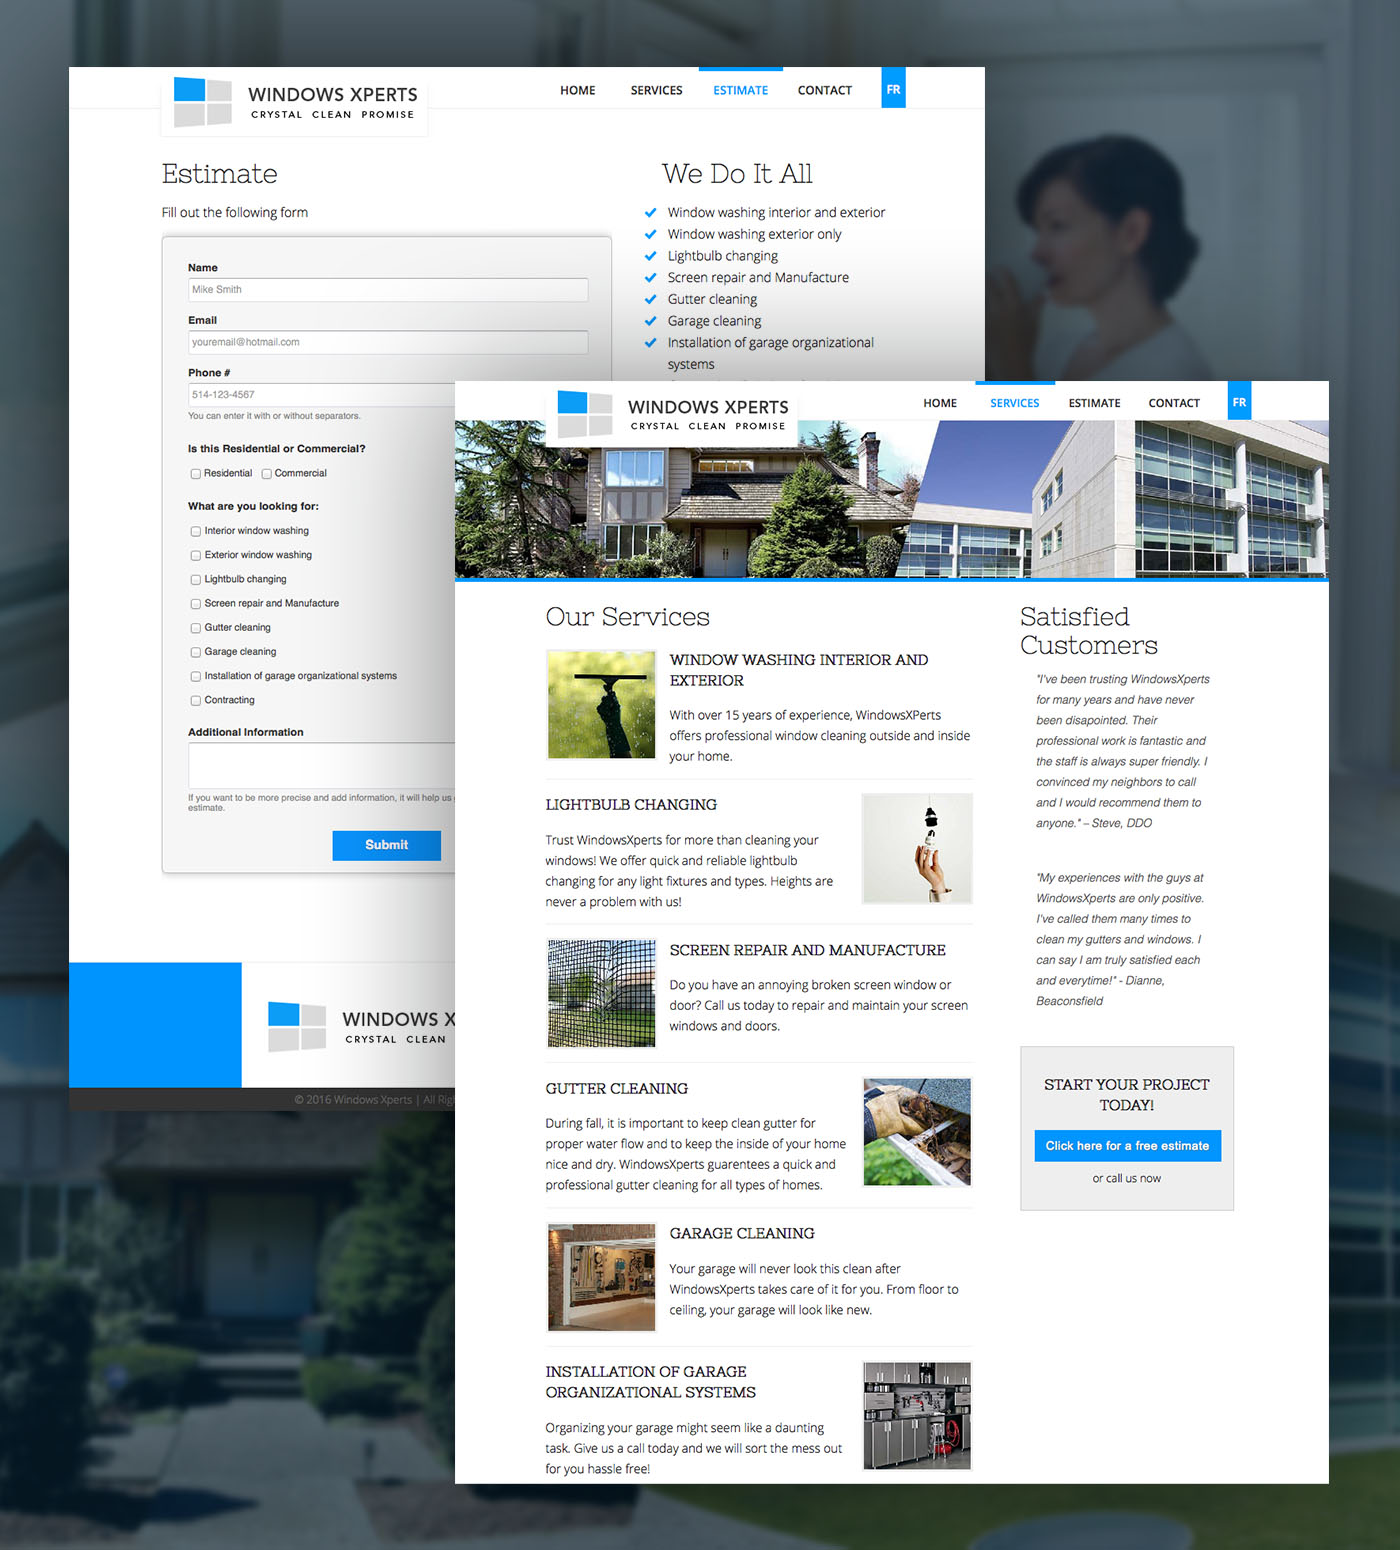 Clean white and blue website design contact form and estimates form complete quote form system website